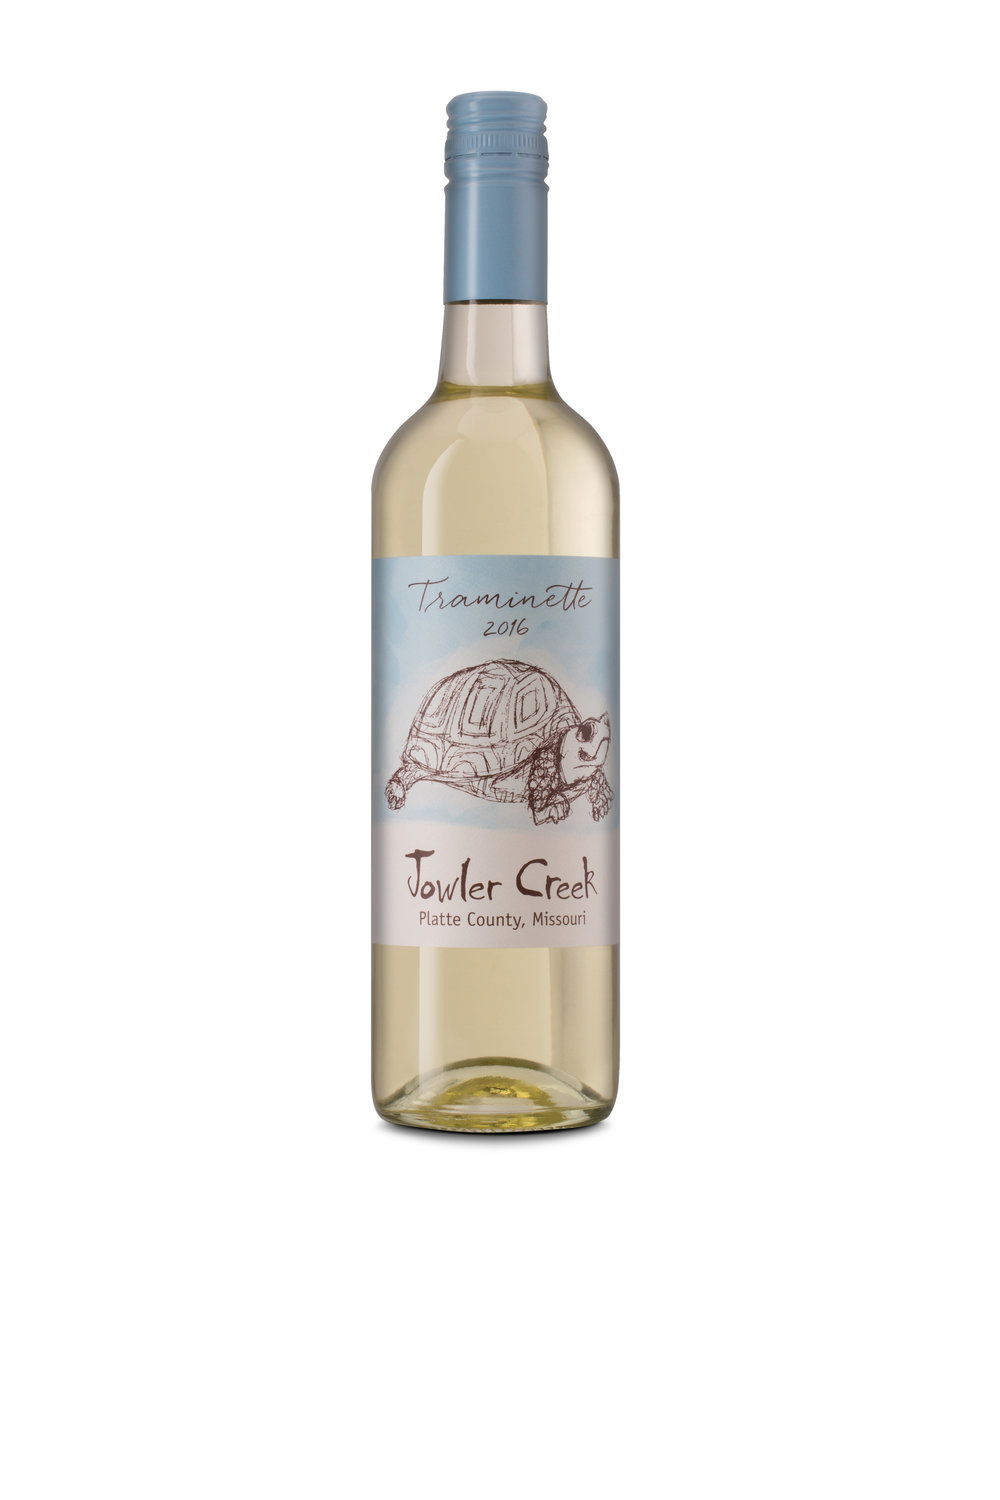 Jowler Creek Winery's  Traminette is the best Traminette wine in the Midwest and Missouri. It is made in  Jowler Creek Winery's  certified  sustainable winemaking  facility located  near Weston Missouri, Kansas City Missouri and St. Joseph Missouri